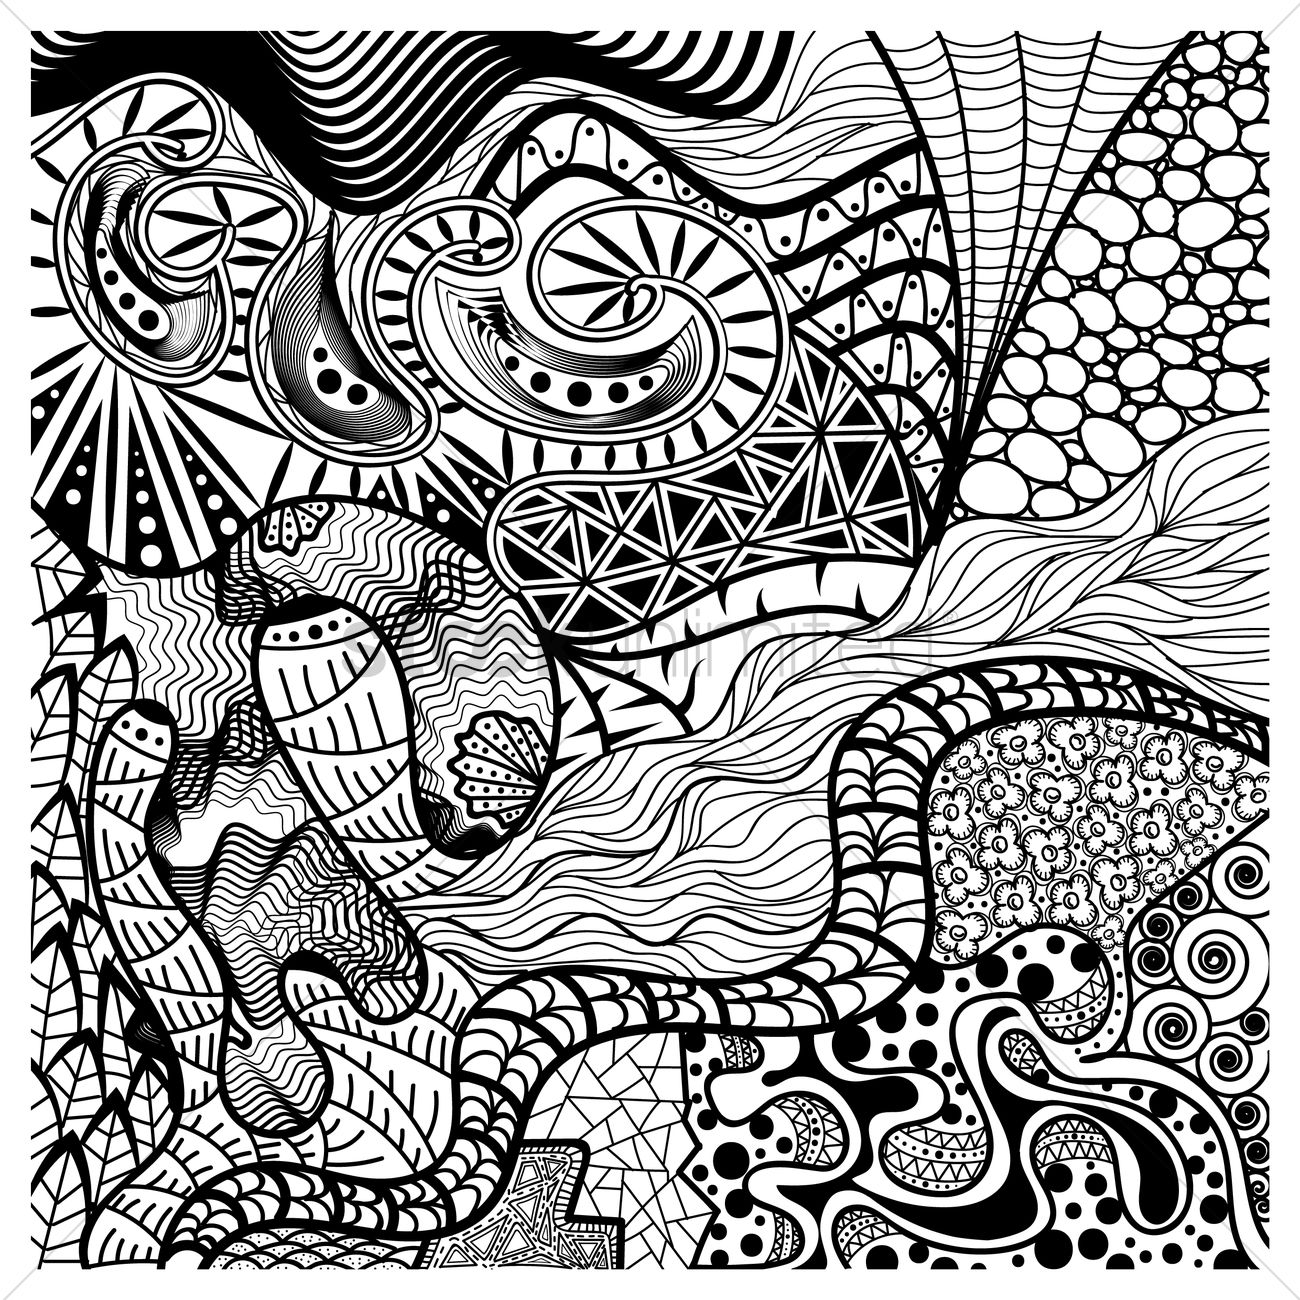 Line Art Media Design : Intricate abstract design vector image